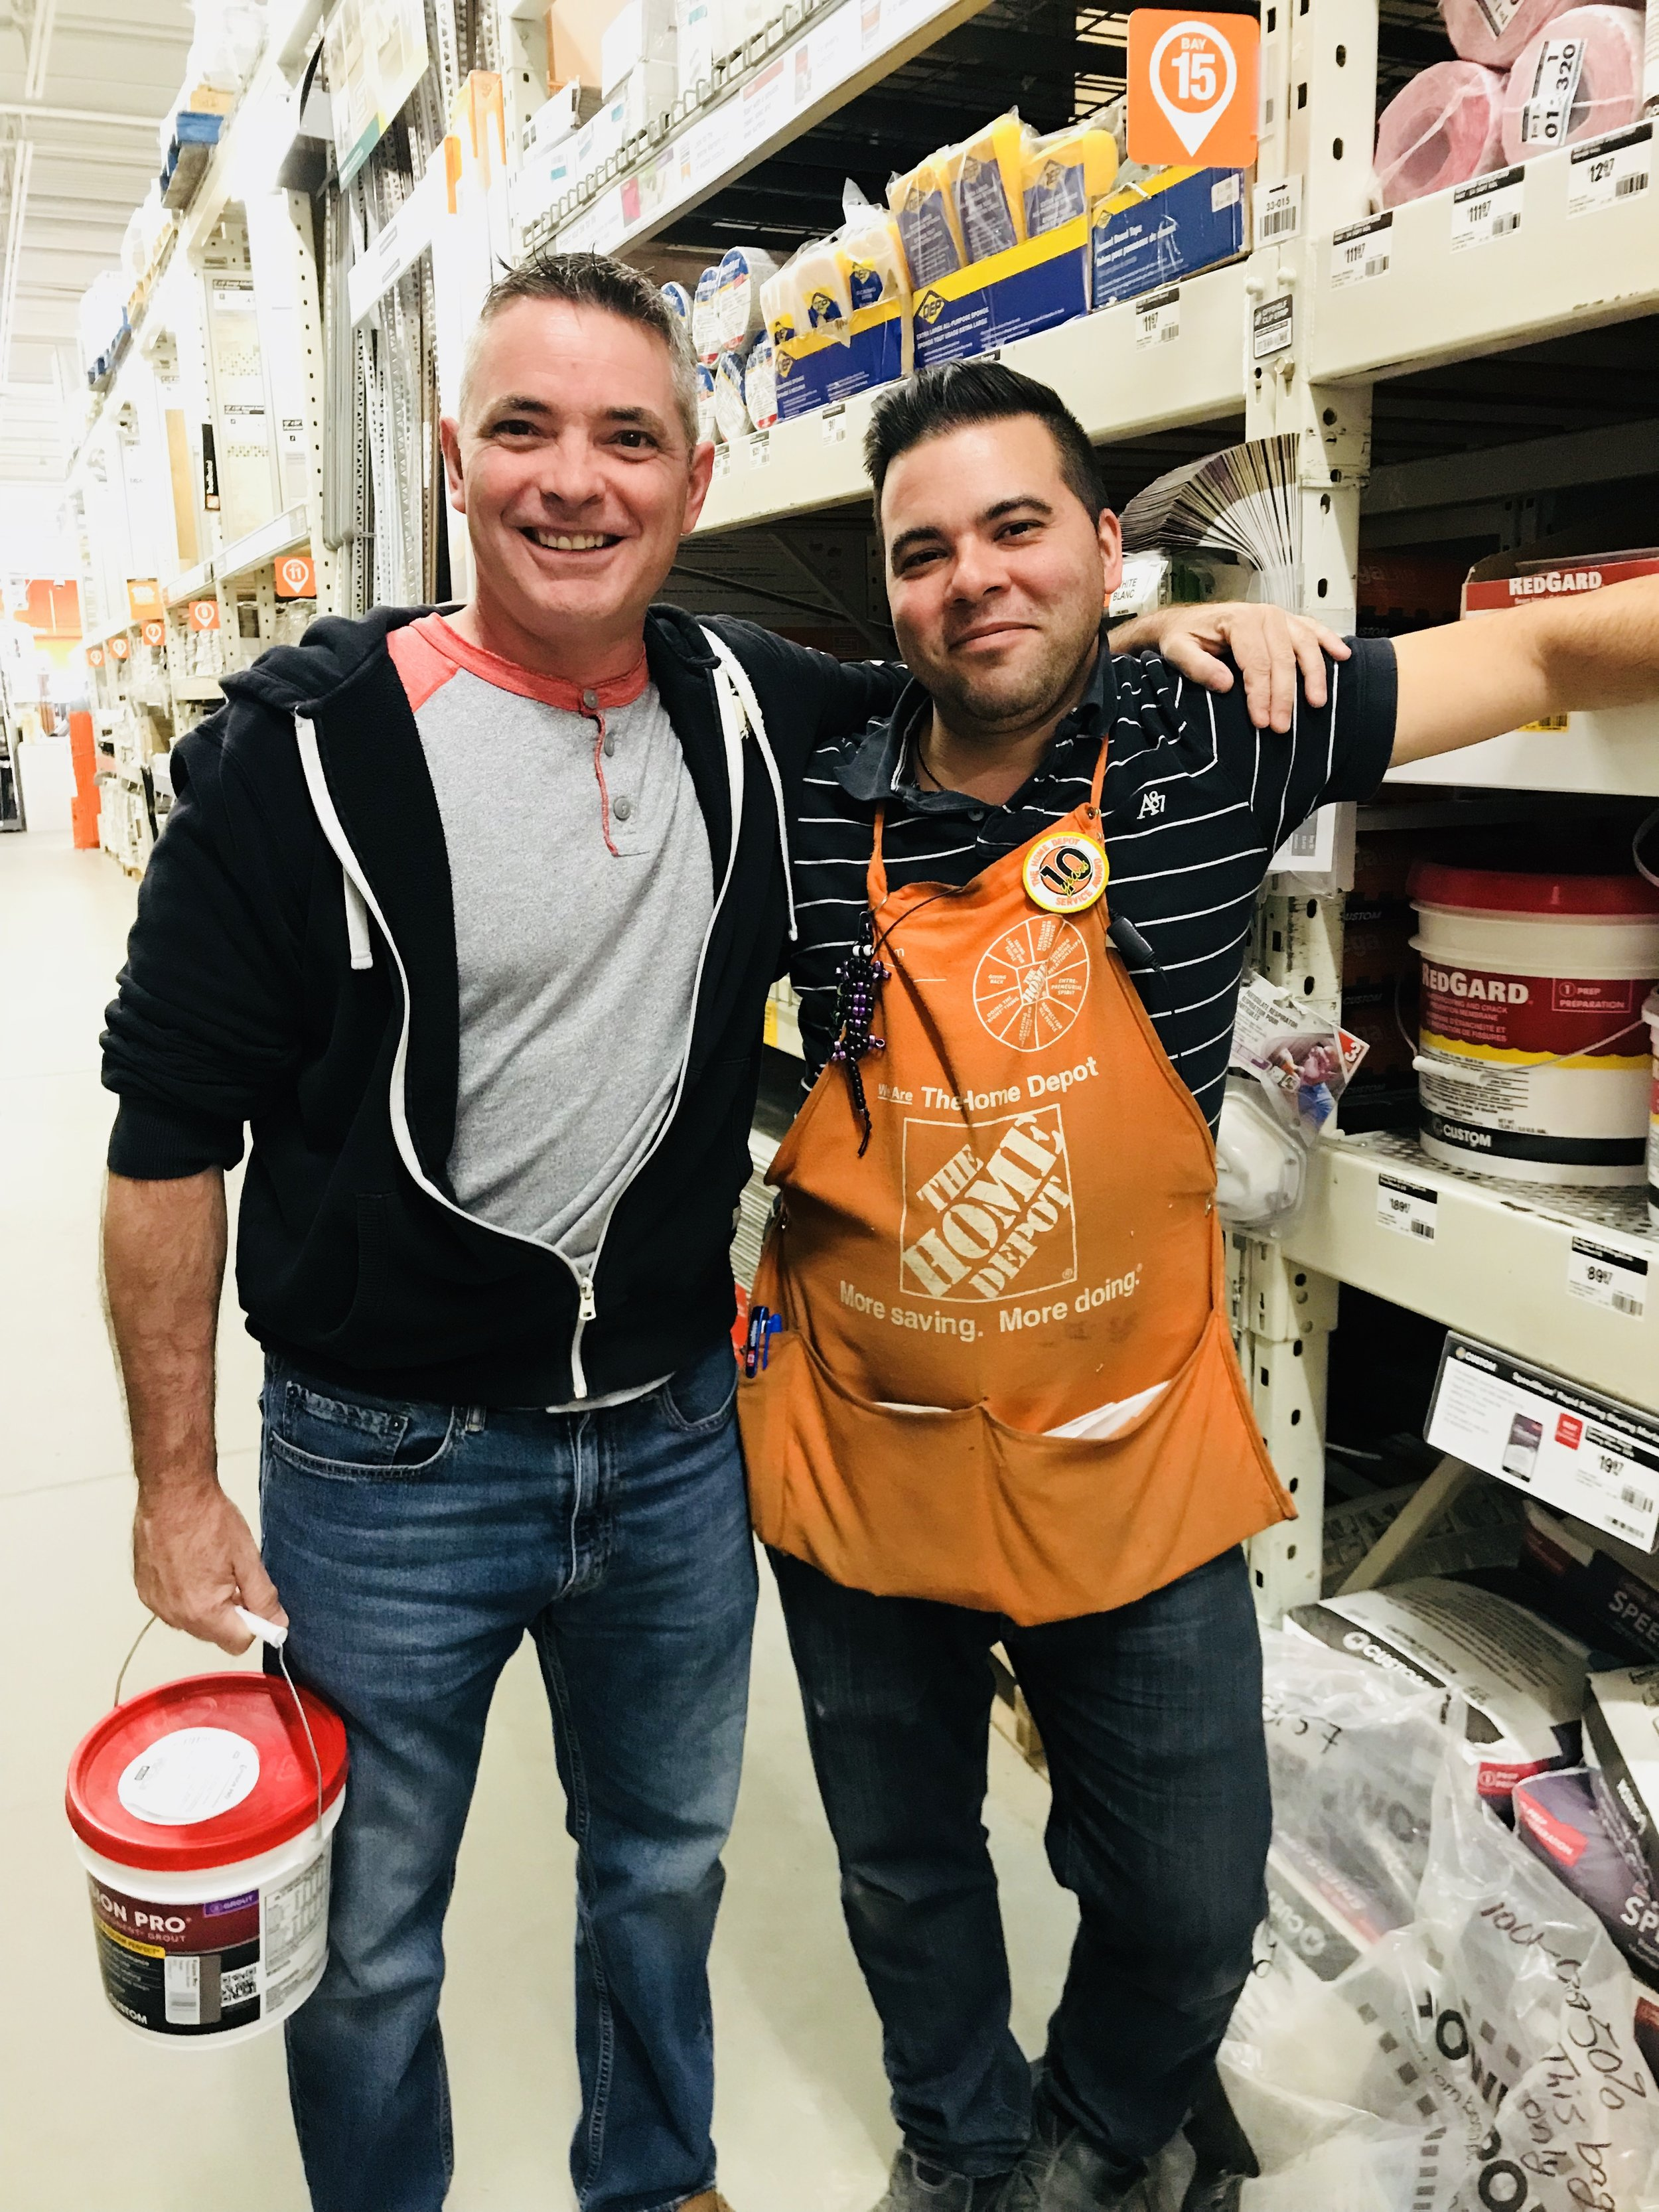 My handy hubby, Alan and Gabe from the Flooring Department at our Local Home Depot